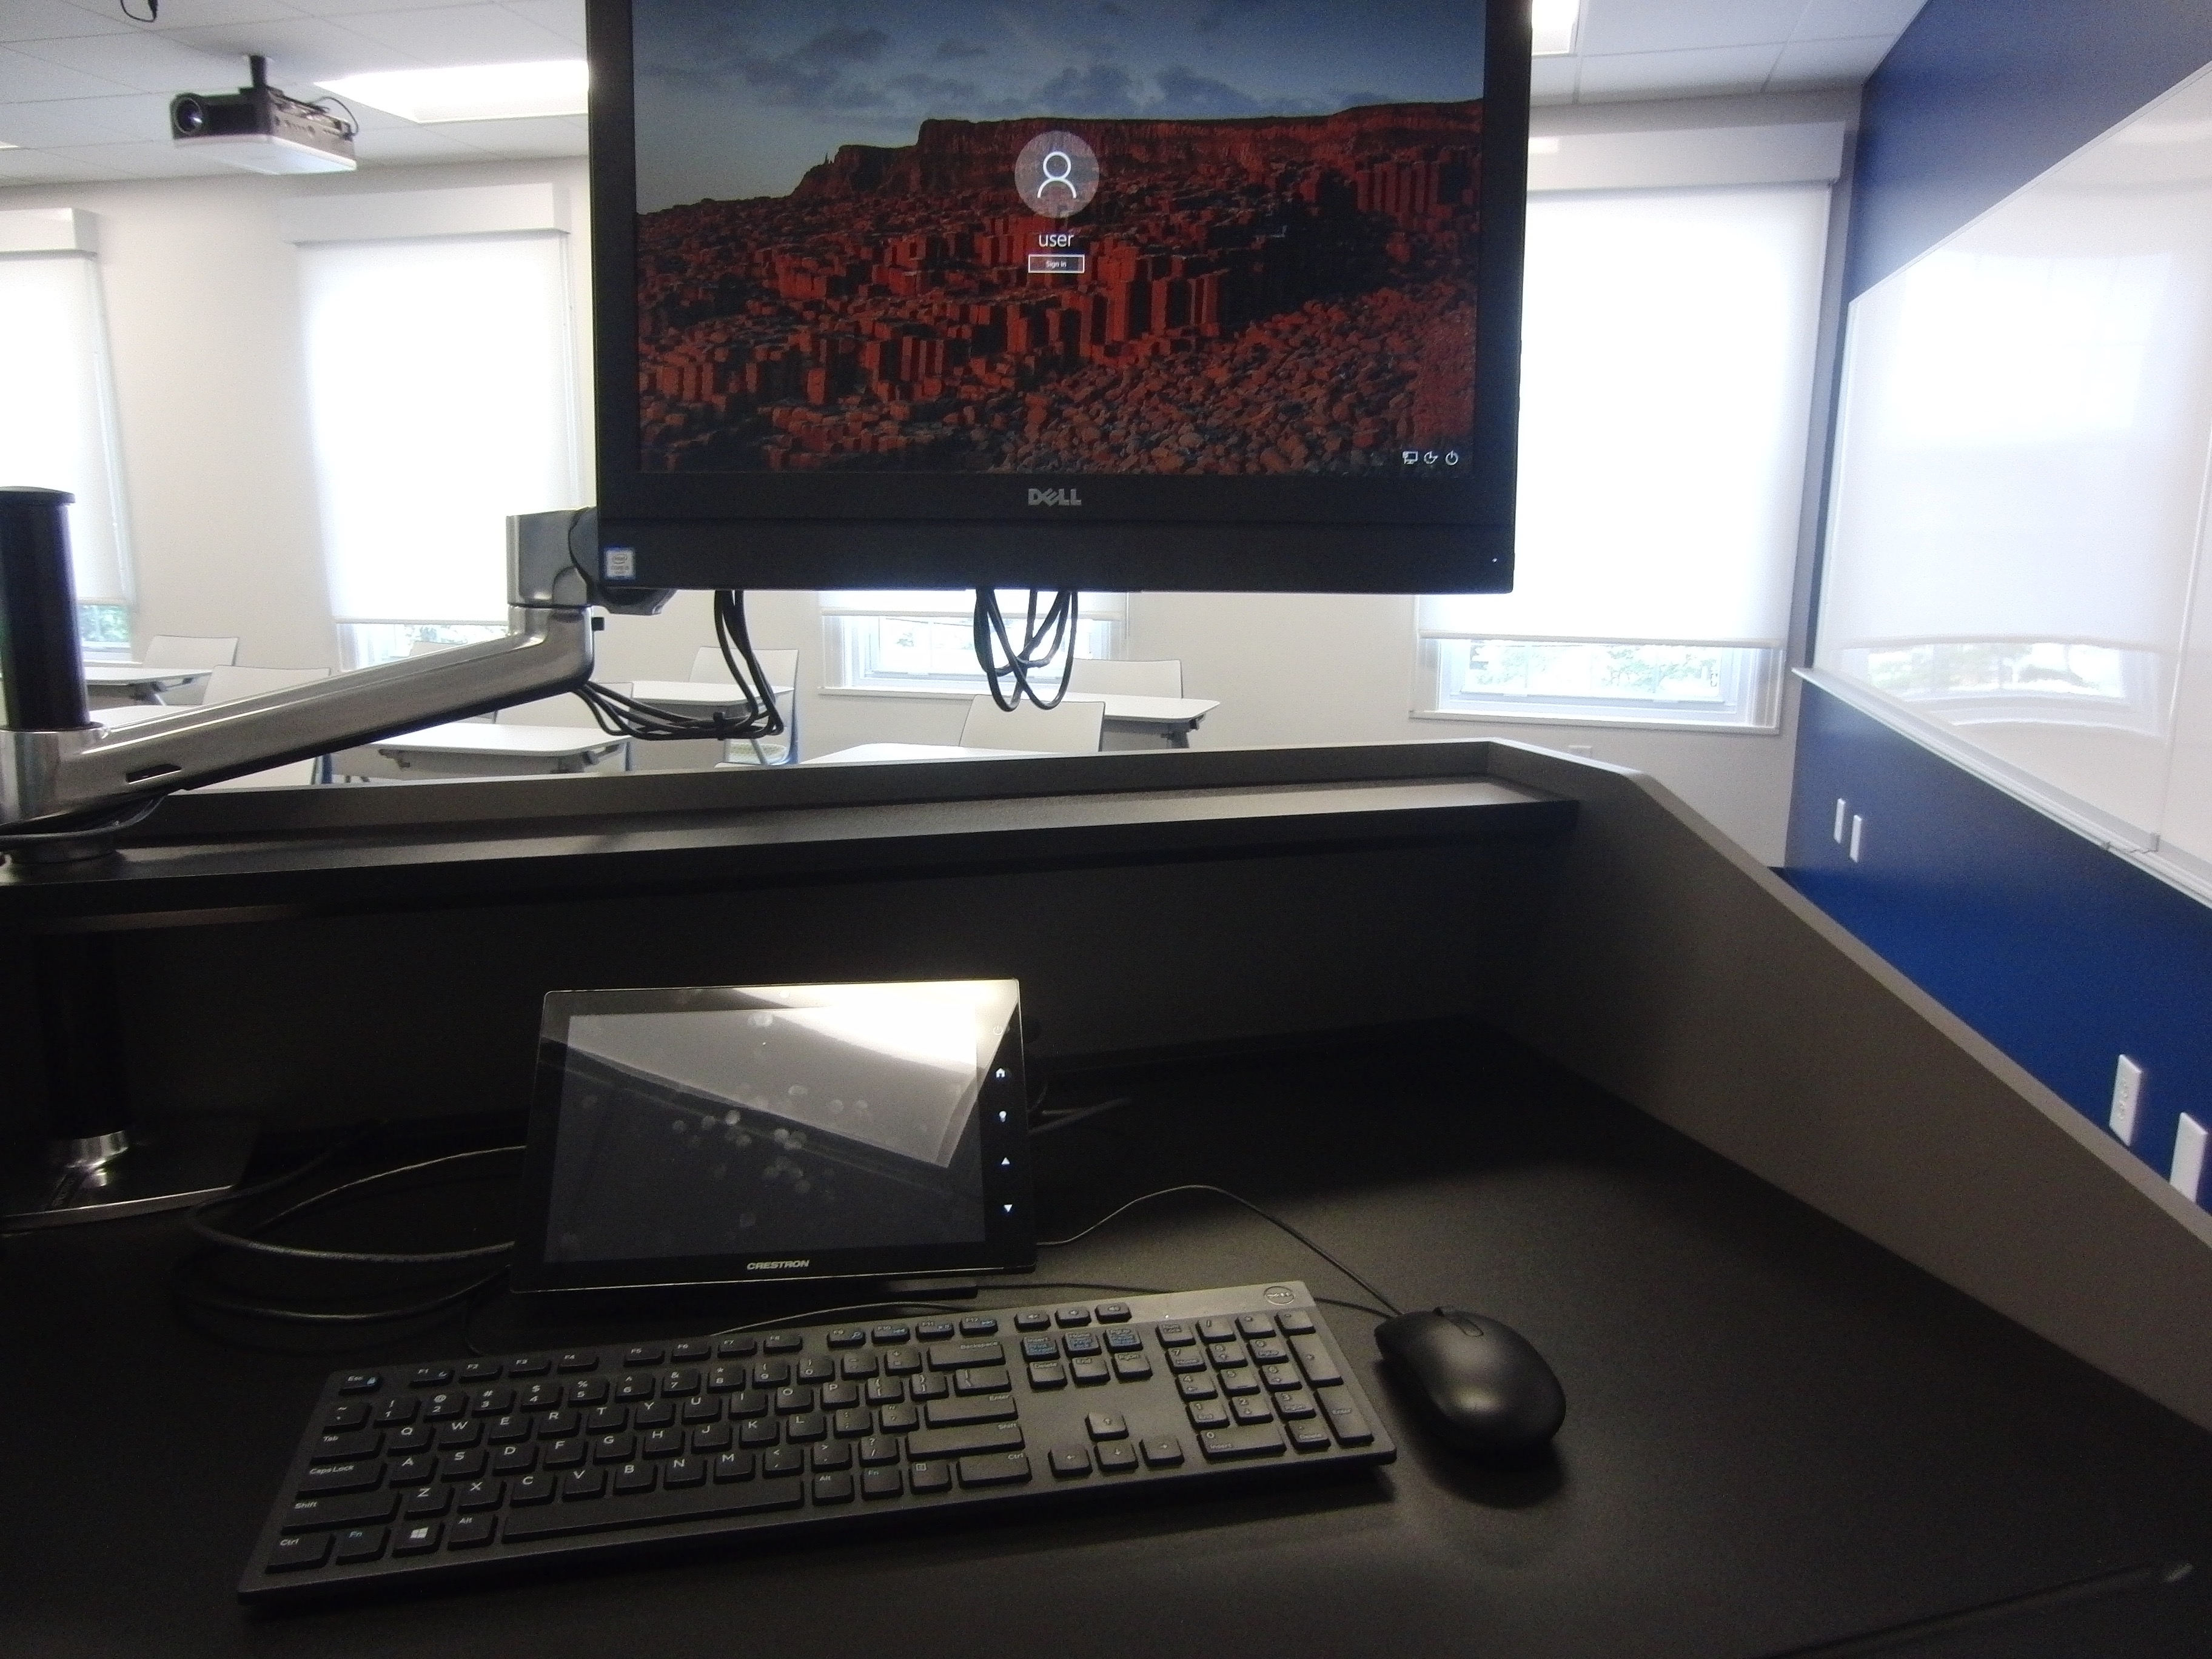 Photo of the dell all in one computer ready for an instructor to log in